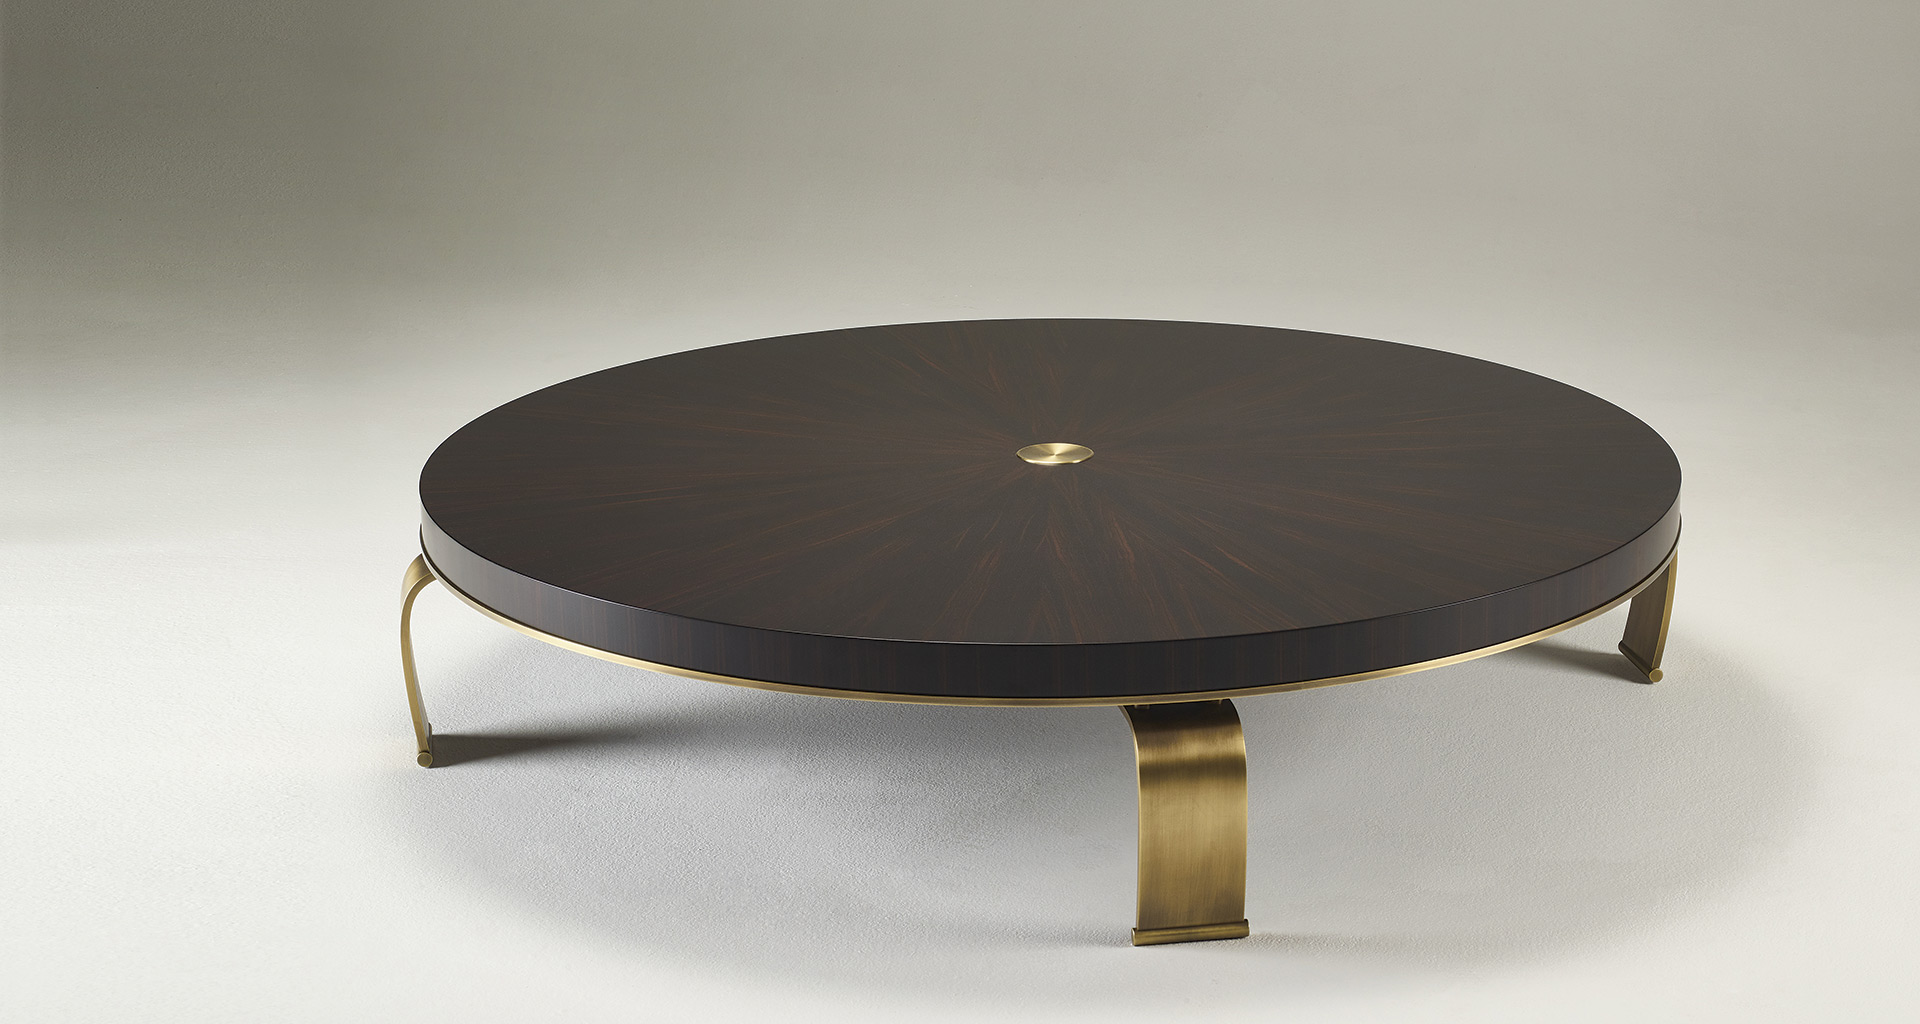 Sumo is an oval, rectangular or circular coffee table with wooden top and bronze legs, from Promemoria's Sun Tales collection | Promemoria